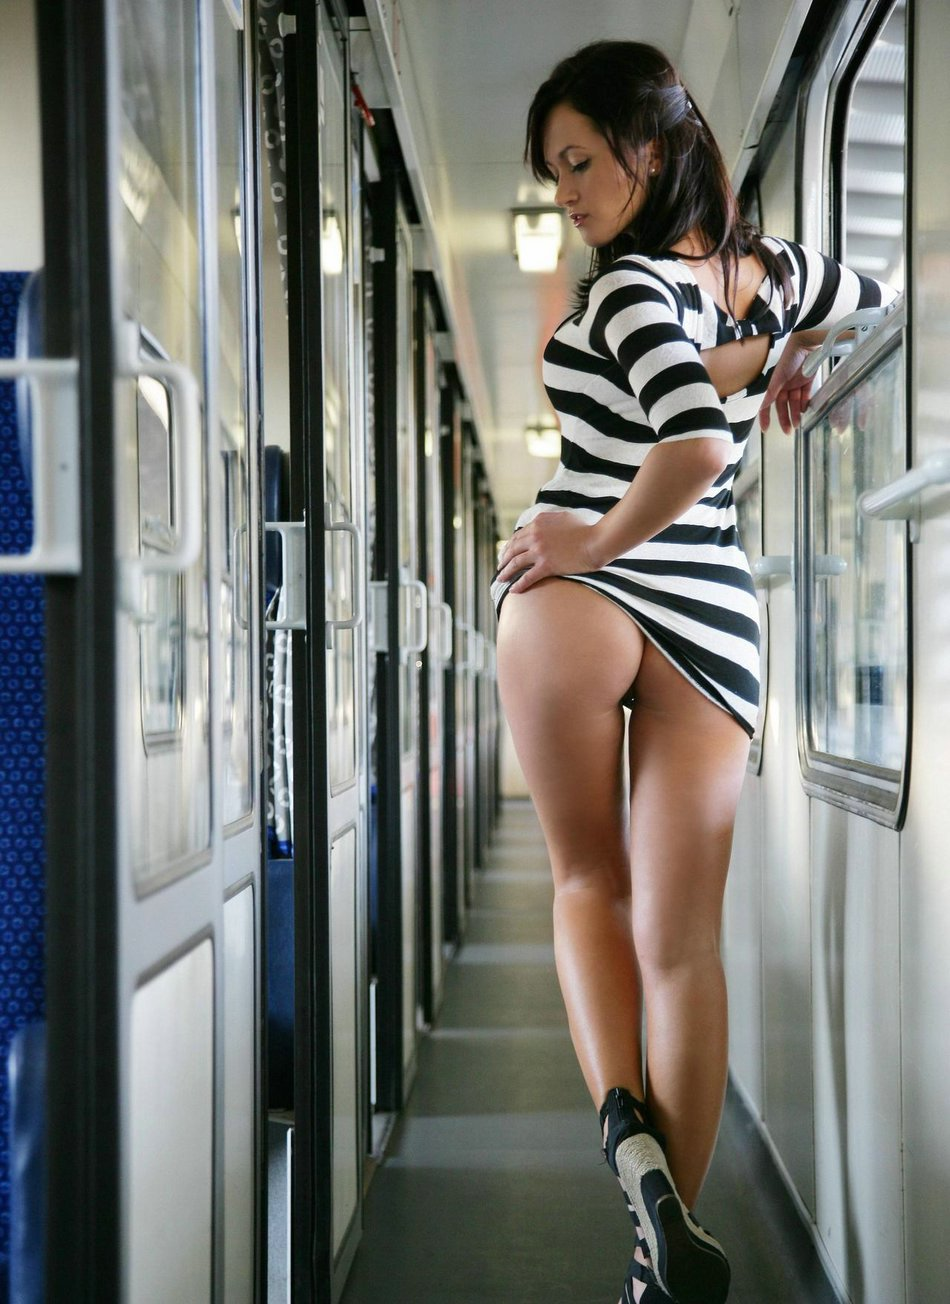 Flashing Ass Pictures of Girl with Hot Ass in Public Train